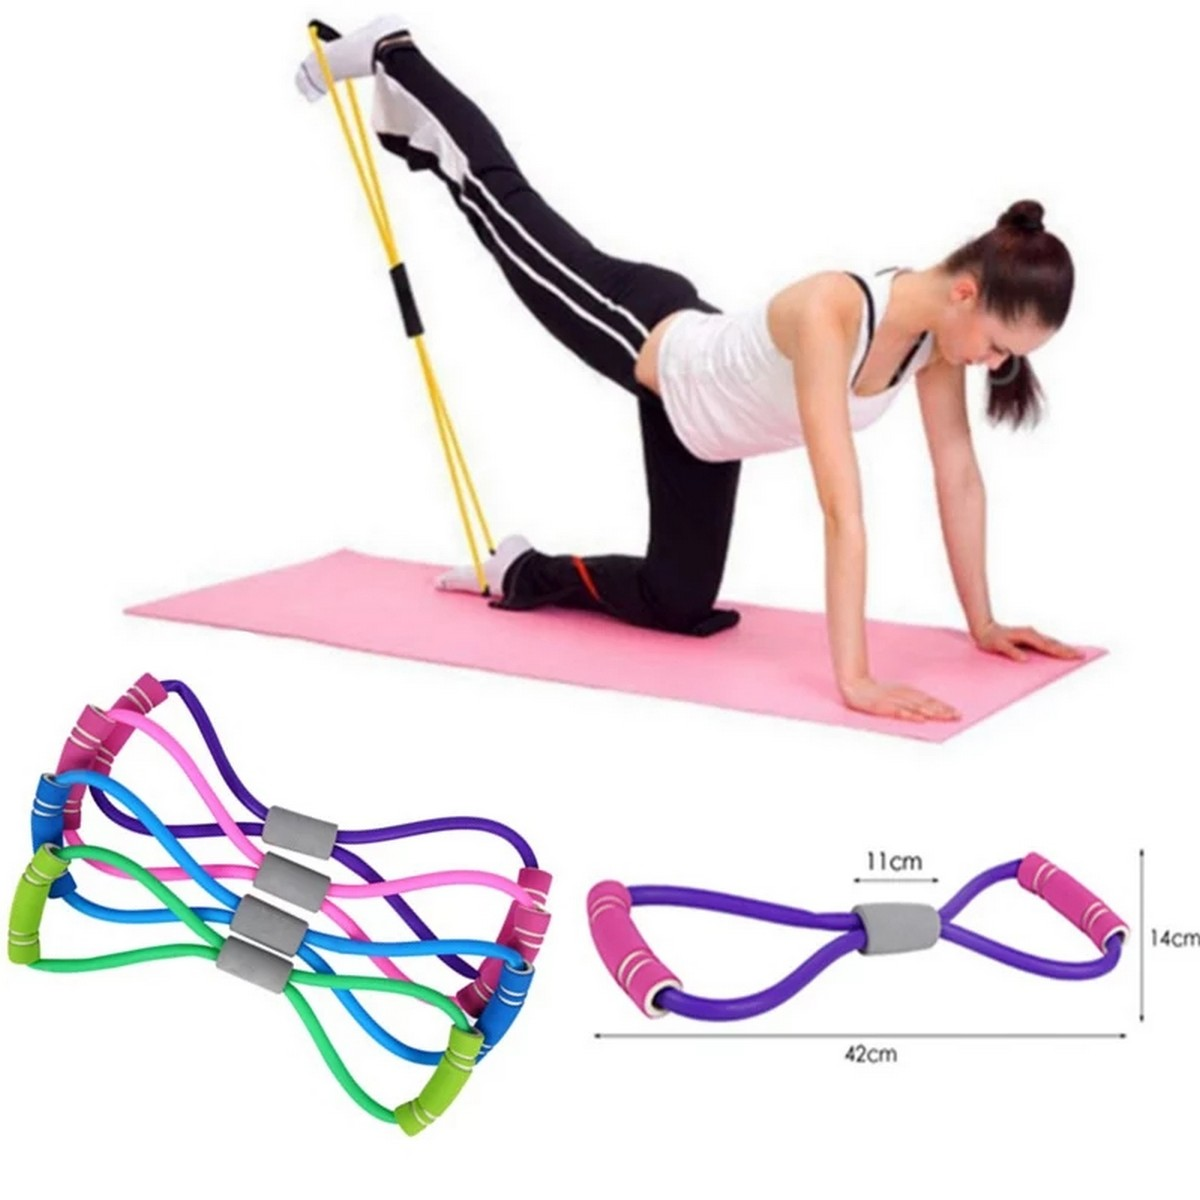 2020 Hot Yoga Gum Fitness Resistance 8 Word Chest Expander Rope Workout Muscle Fitness Rubber Elastic Bands for Sports Exercise